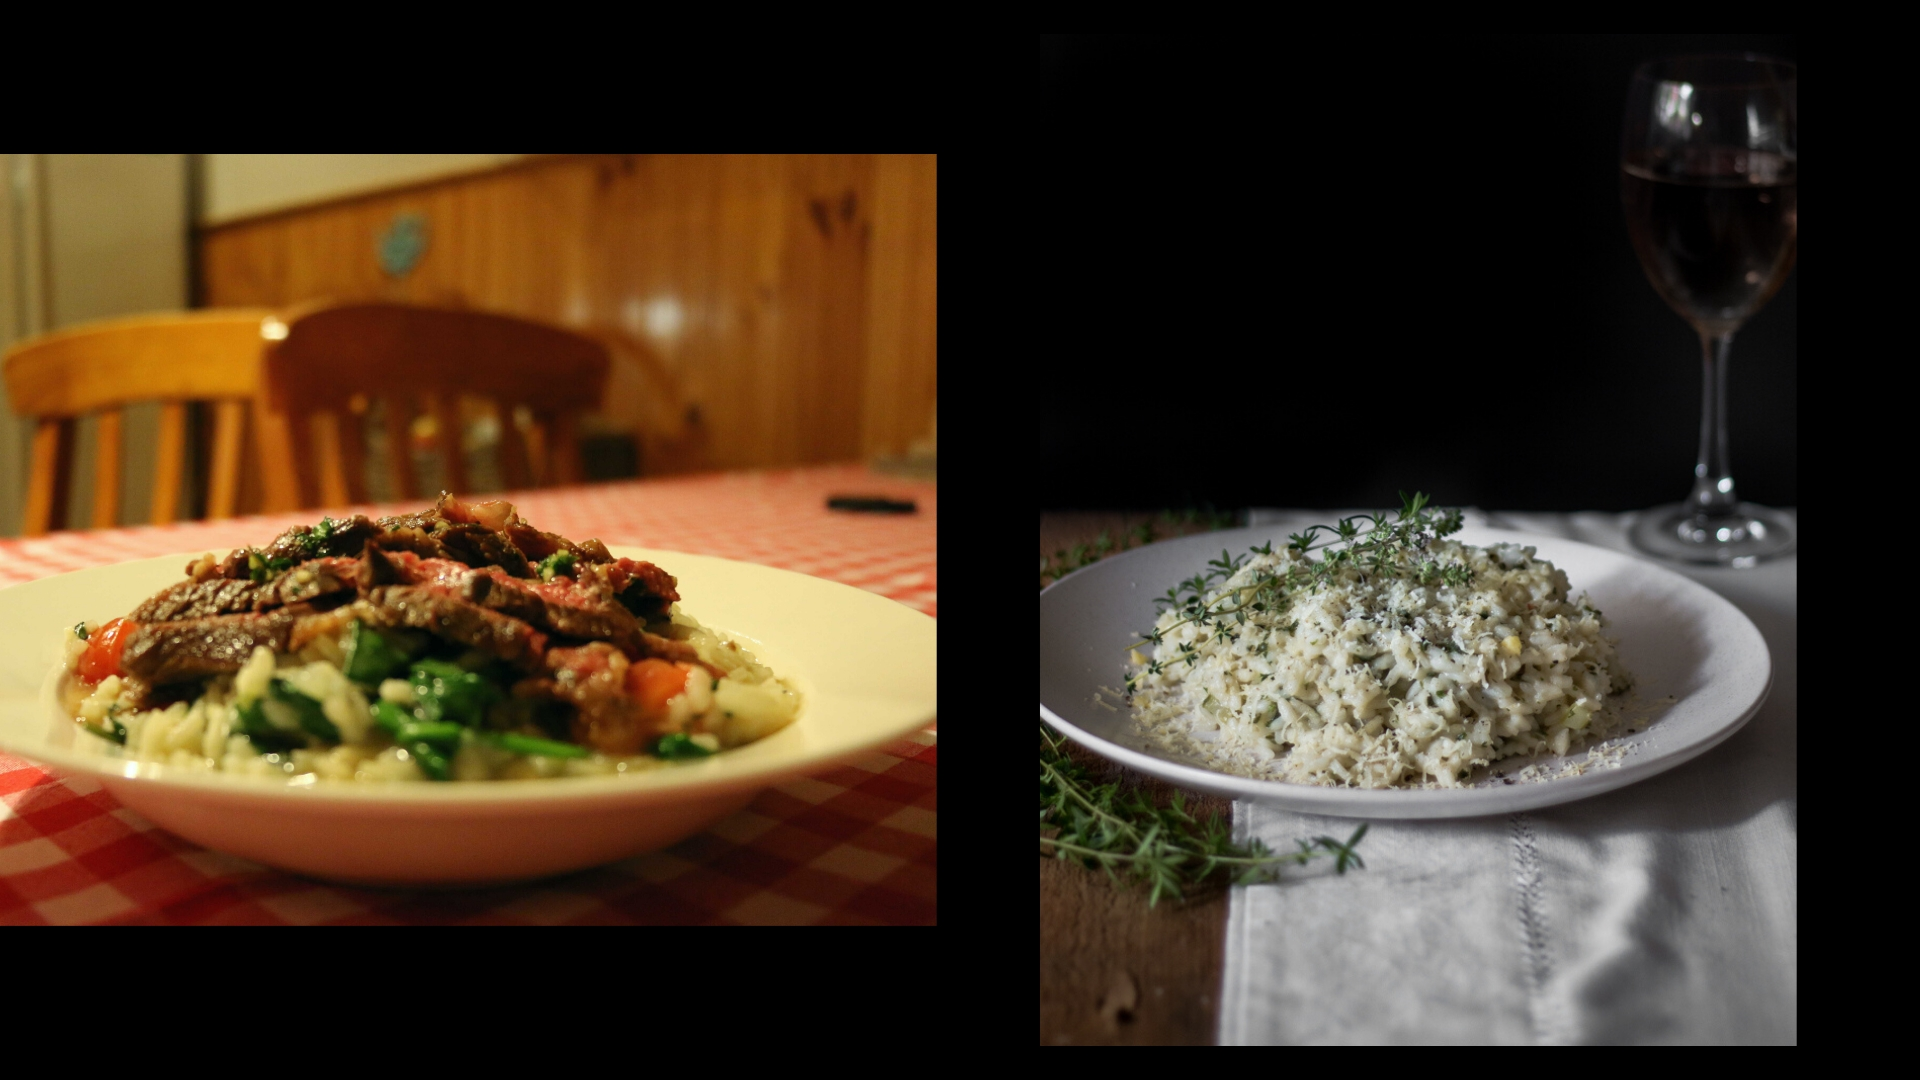 2 photos of risotto side by side.